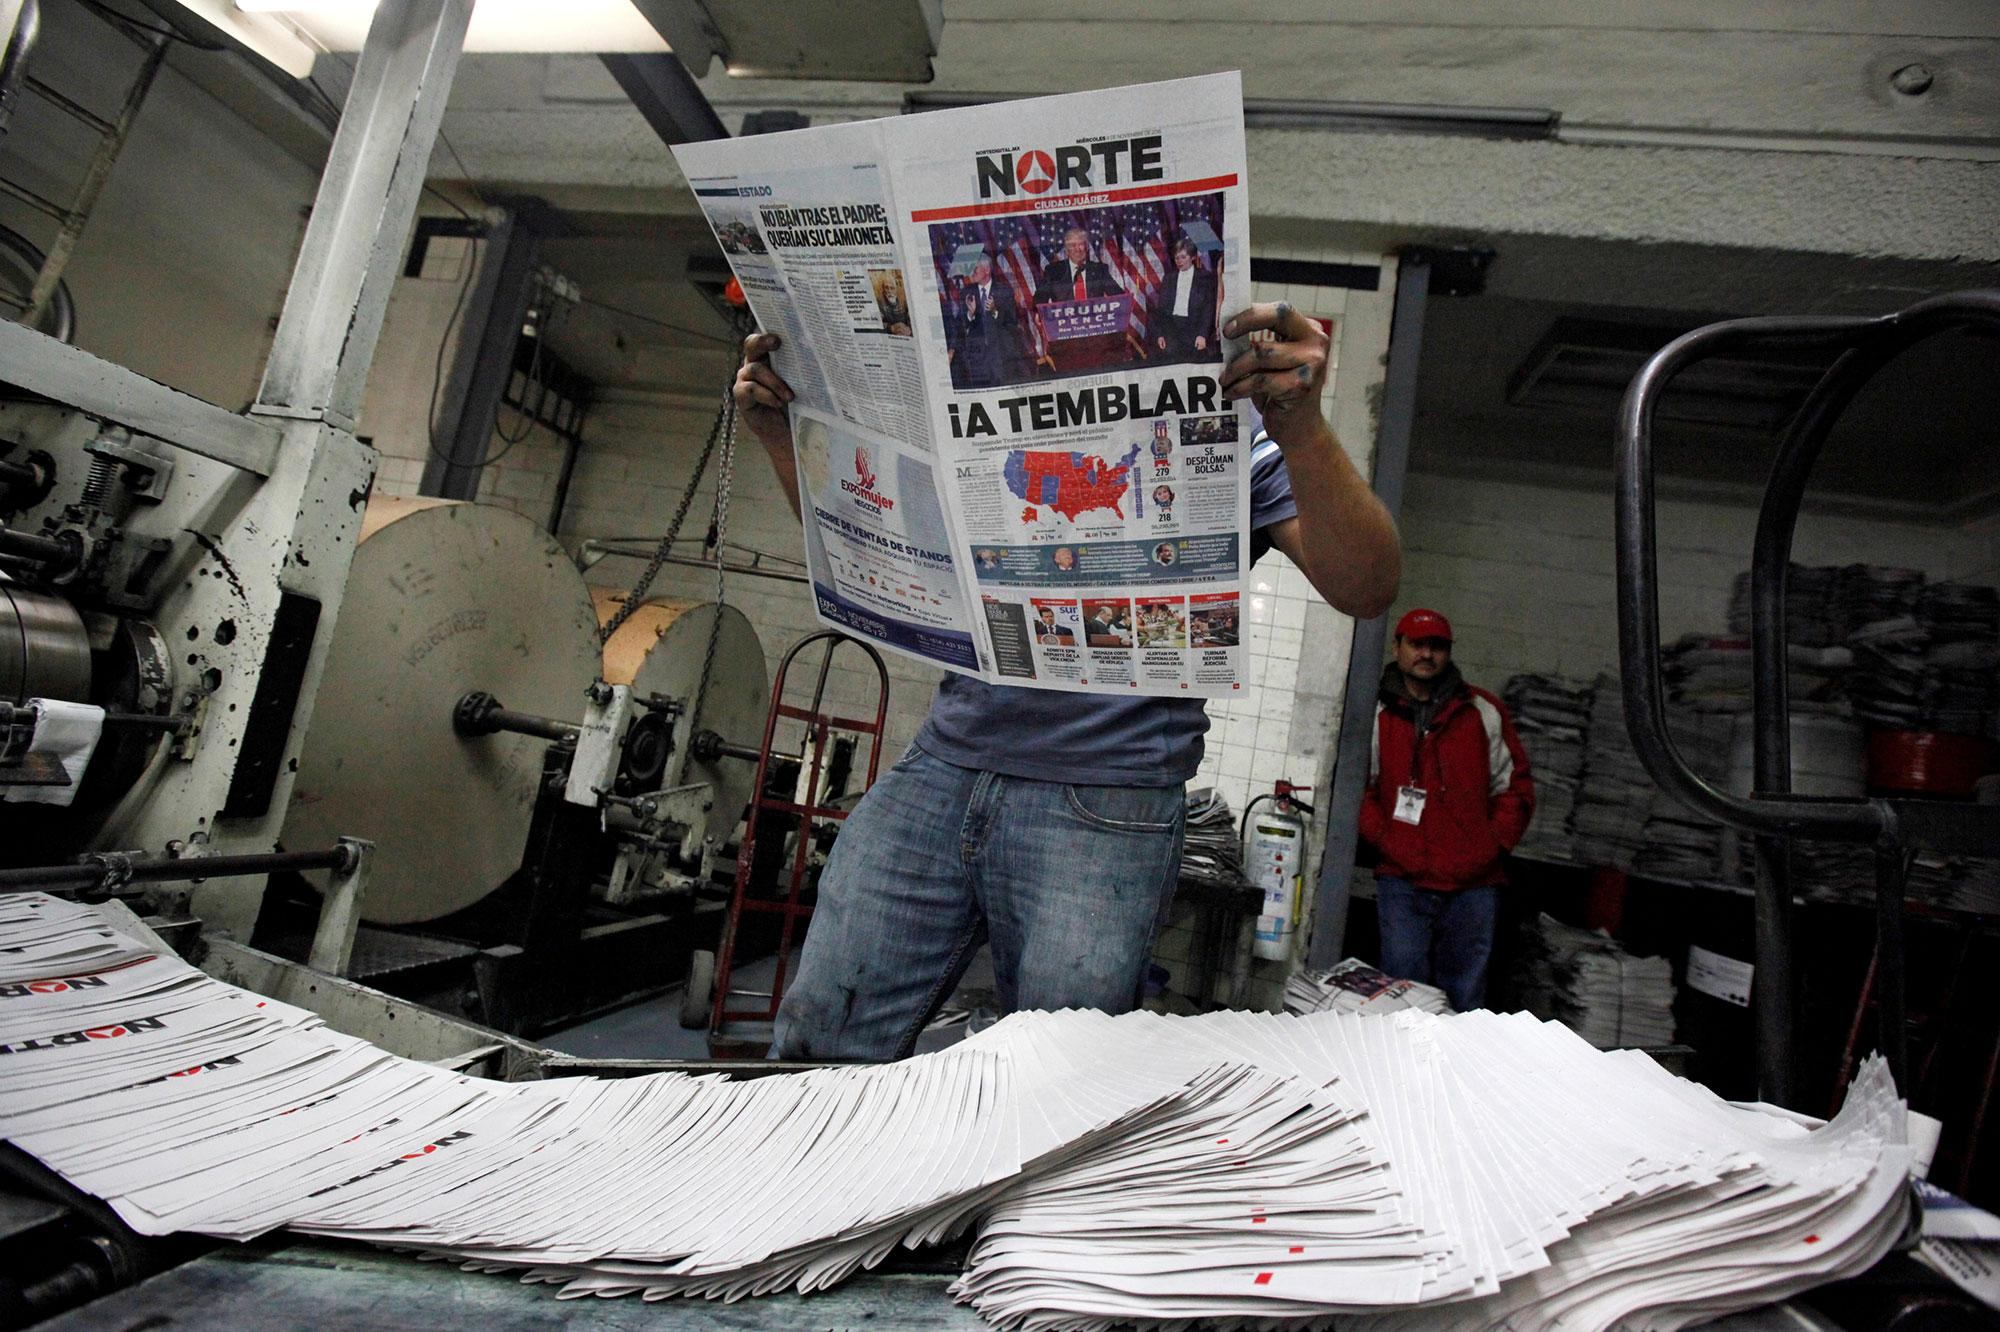 "<p>A worker reads a freshly printed newspaper with the headline reading ""We will tremble"" at a printer of the local daily Norte in Ciudad Juarez, Mexico on Nov. 9, 2016. (Photo: Jose Luis Gonzalez/Reuters) </p>"